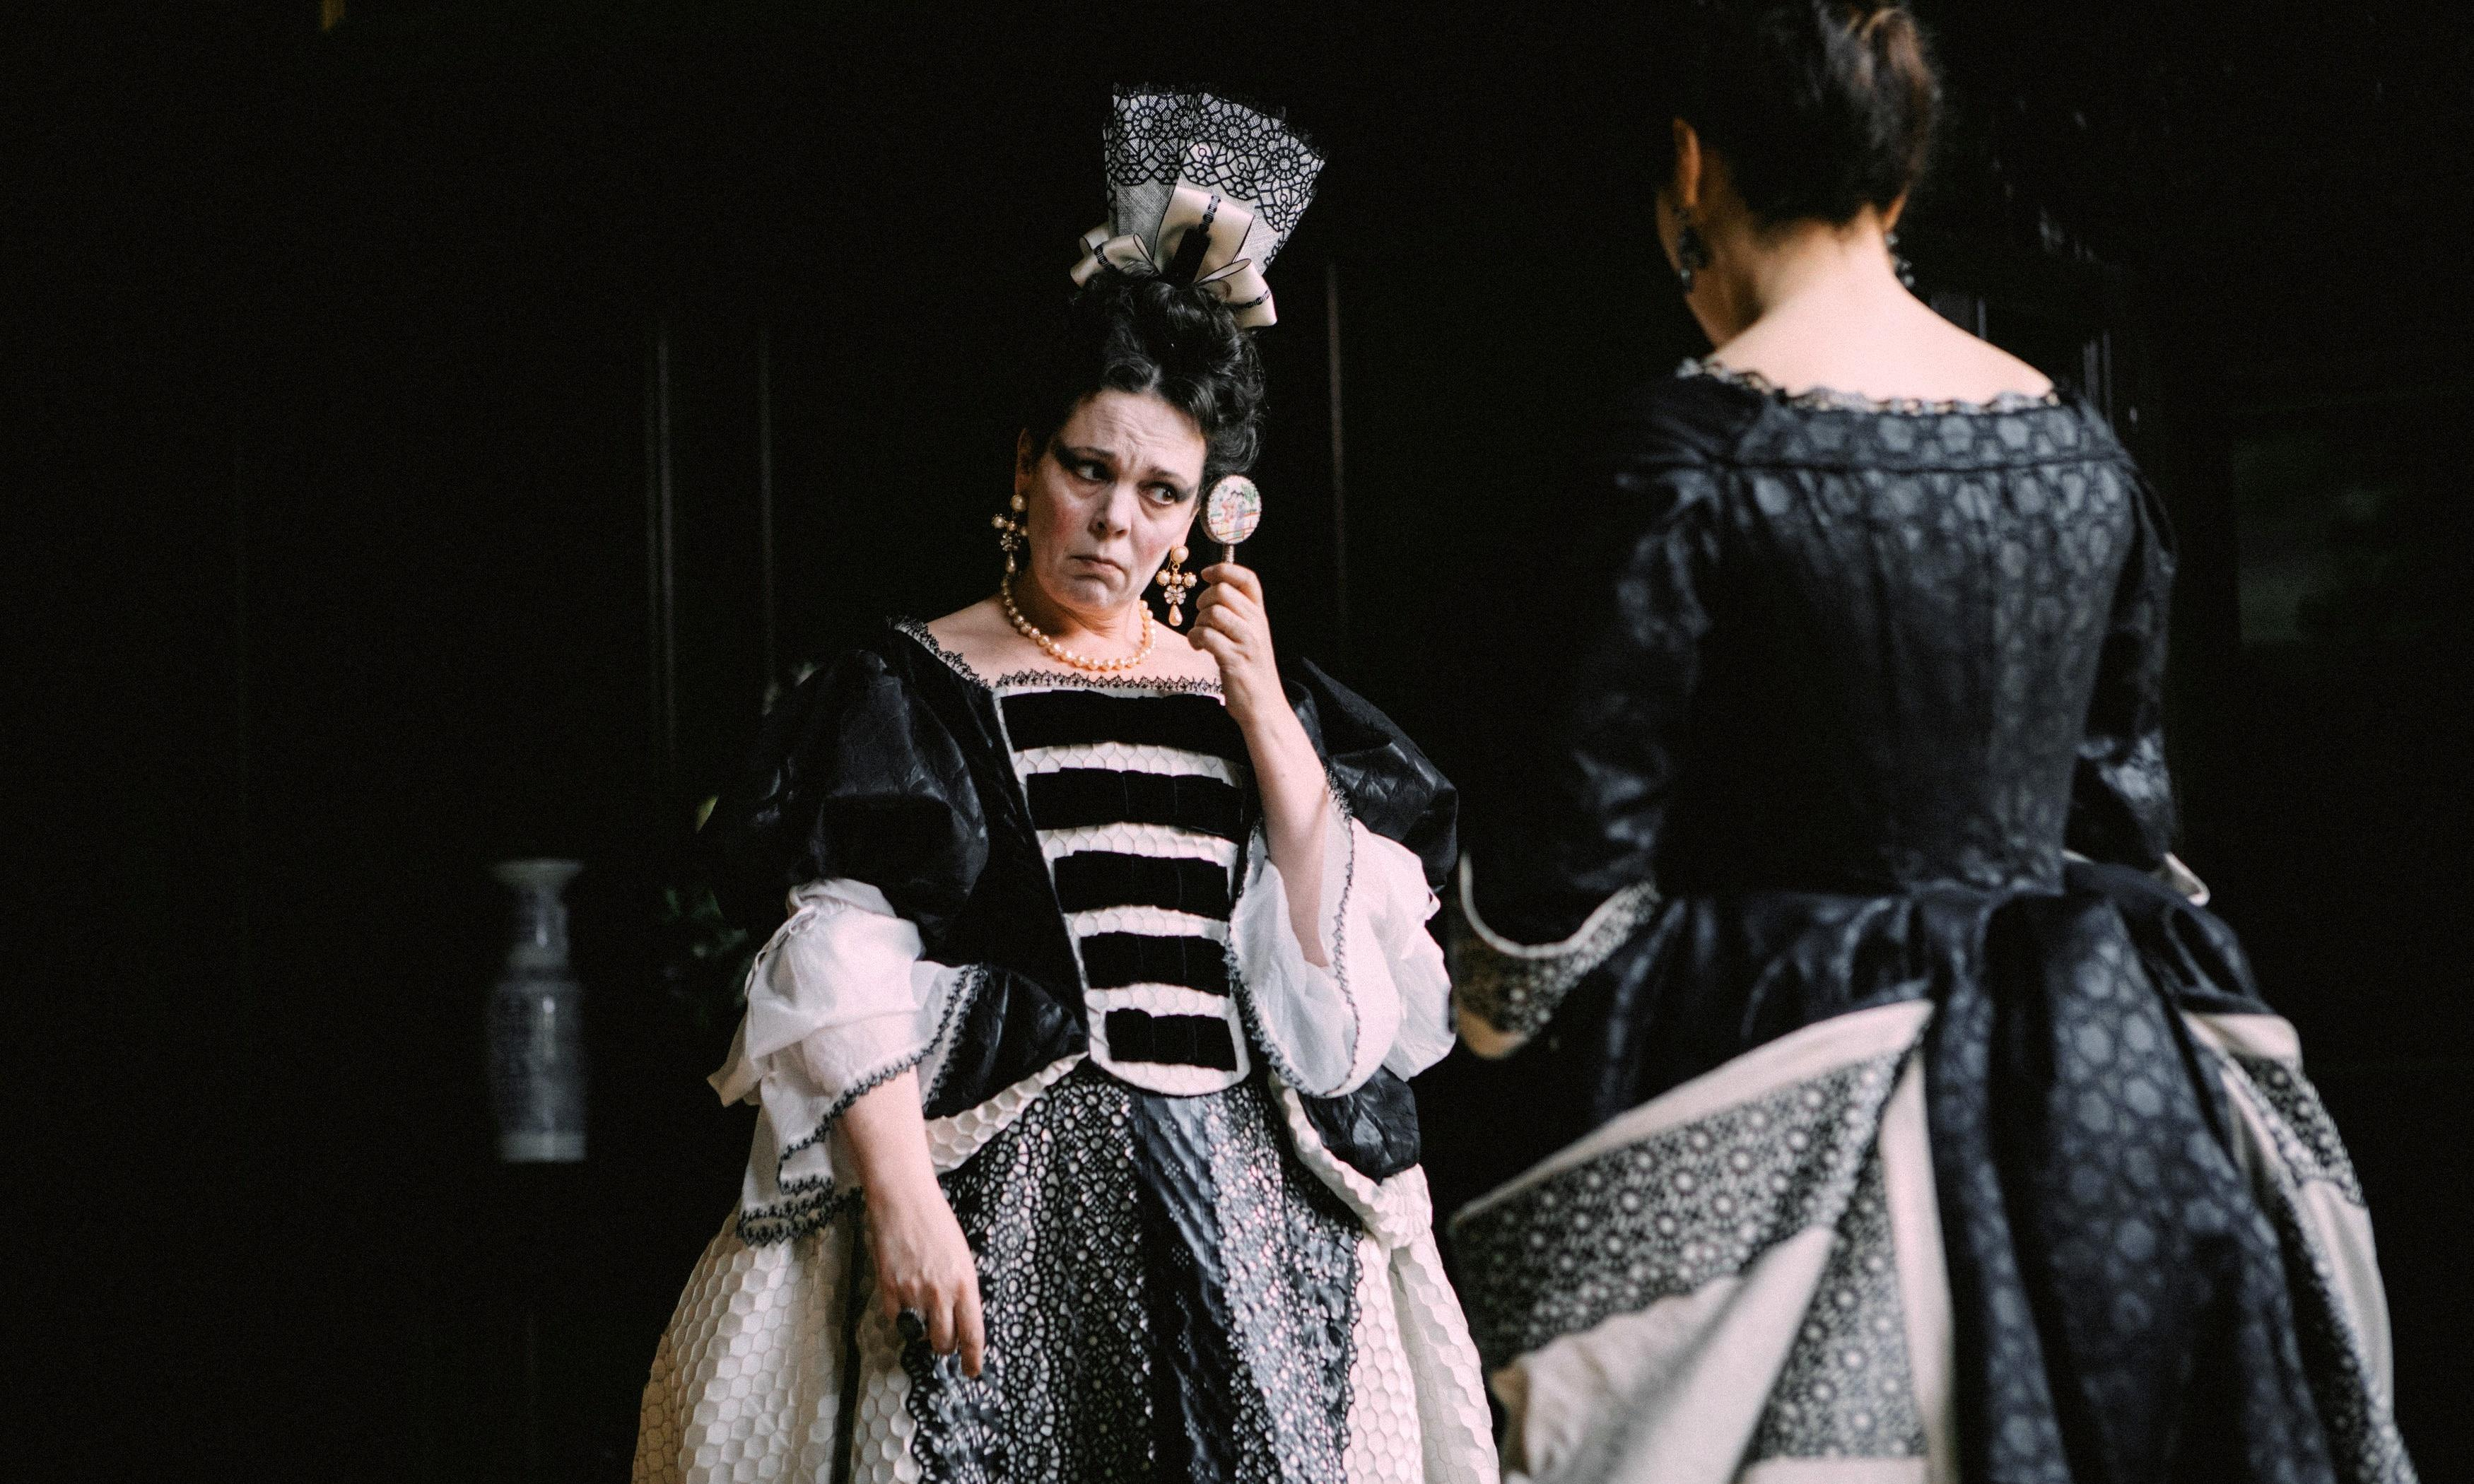 The 50 best films of 2019 in the UK: No 6 – The Favourite